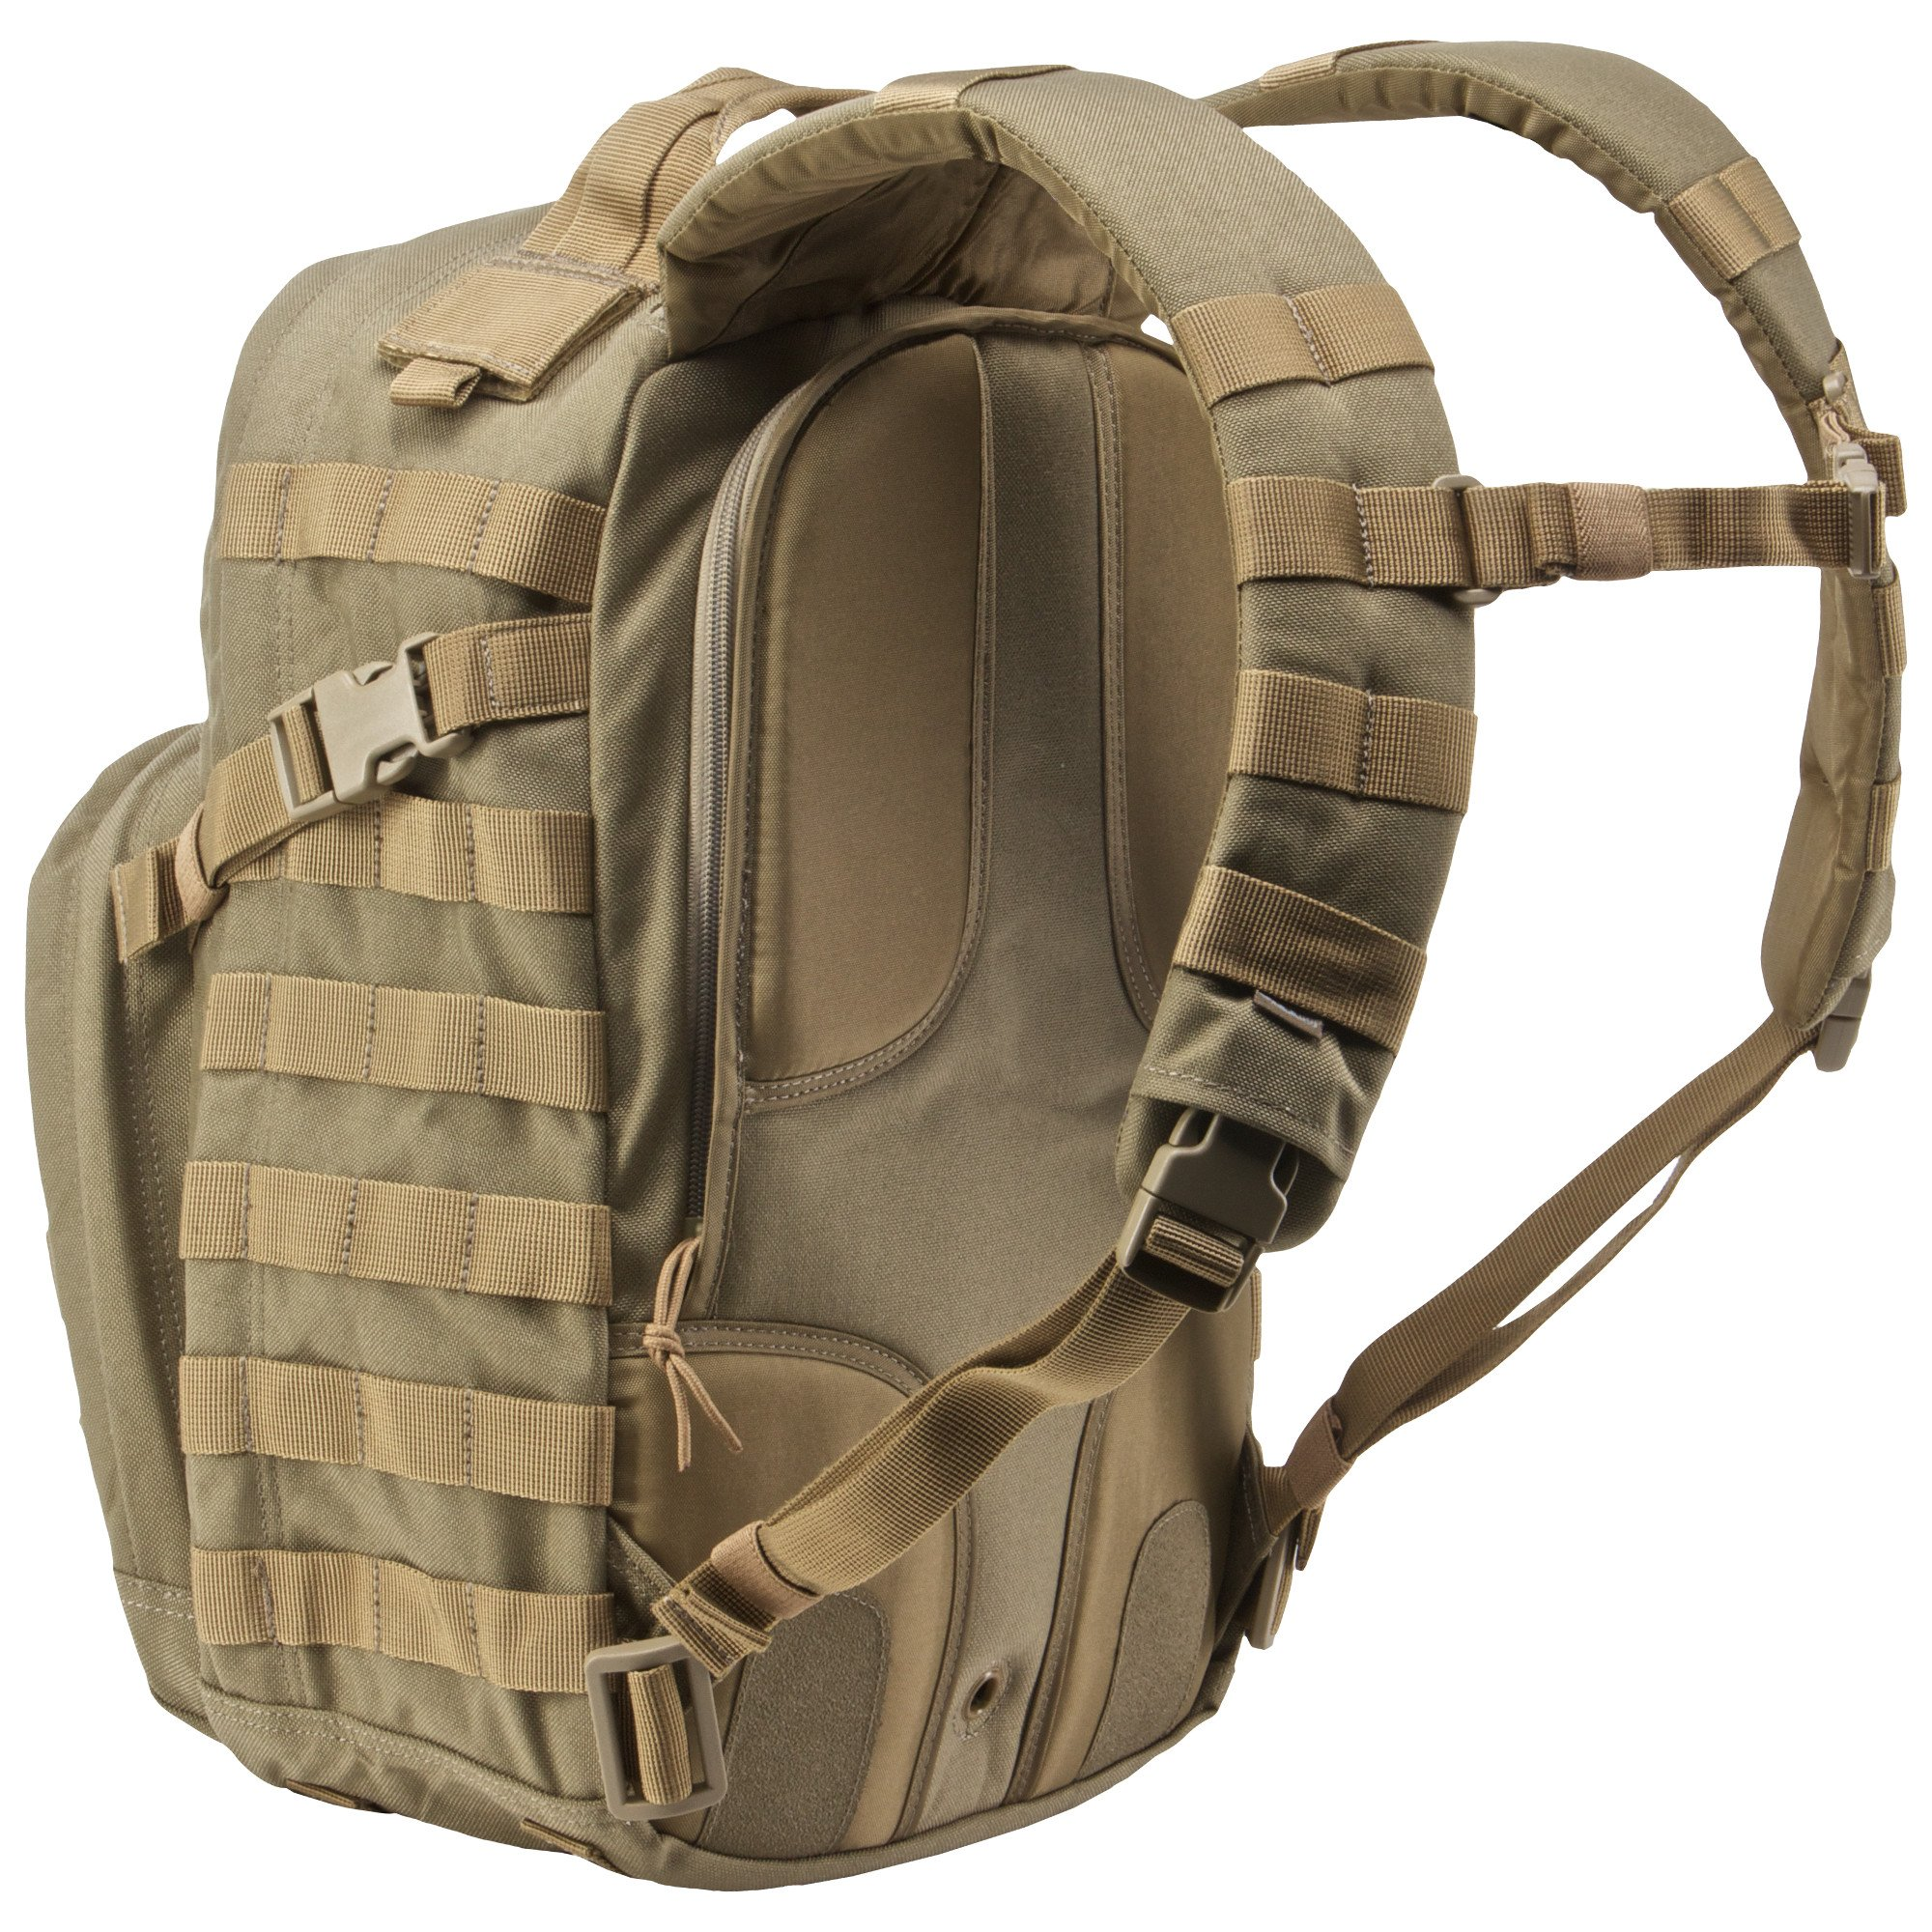 5.11 RUSH12 Tactical Military Assault Molle Backpack, Bug Out Rucksack Bag, Small, Style 56892, Sandstone by 5.11 (Image #4)